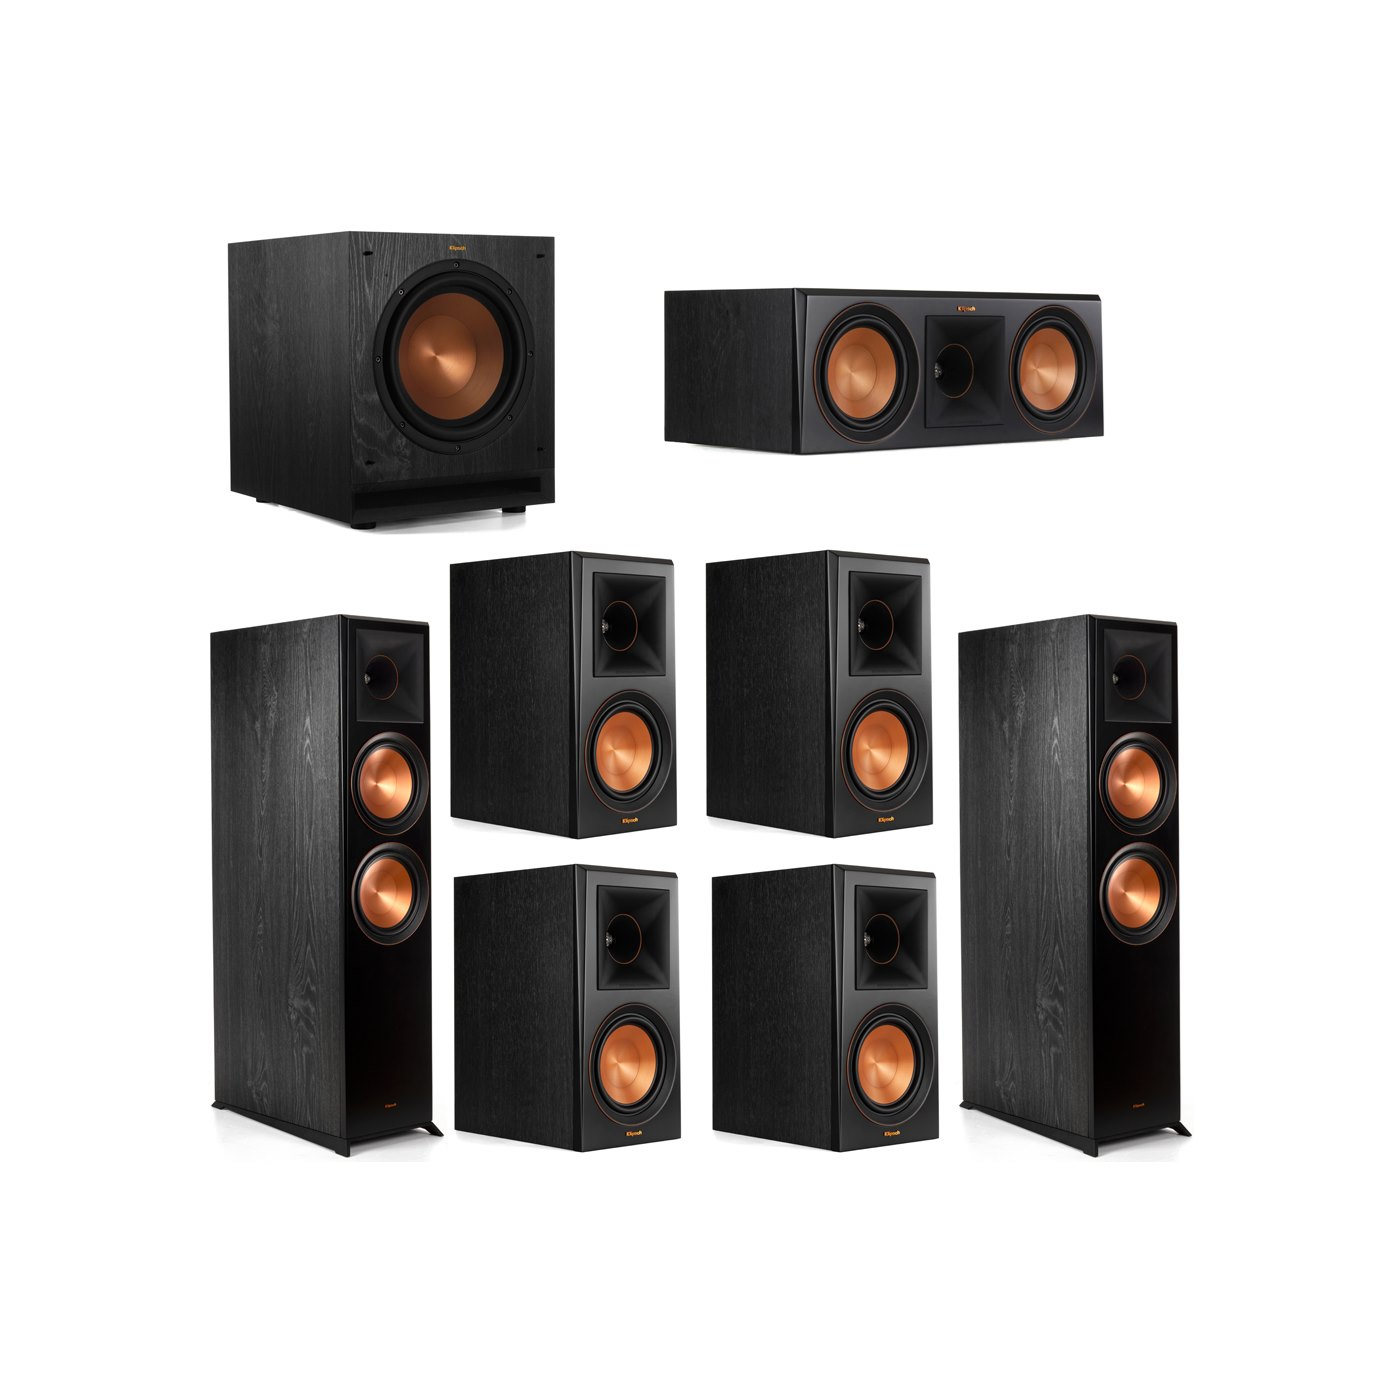 Klipsch 7.1 System with 2 RP-8000F Floorstanding Speakers, 1 Klipsch RP-600C Center Speaker, 4 Klipsch RP-600M Surround Speakers, 1 Klipsch SPL-100 Subwoofer